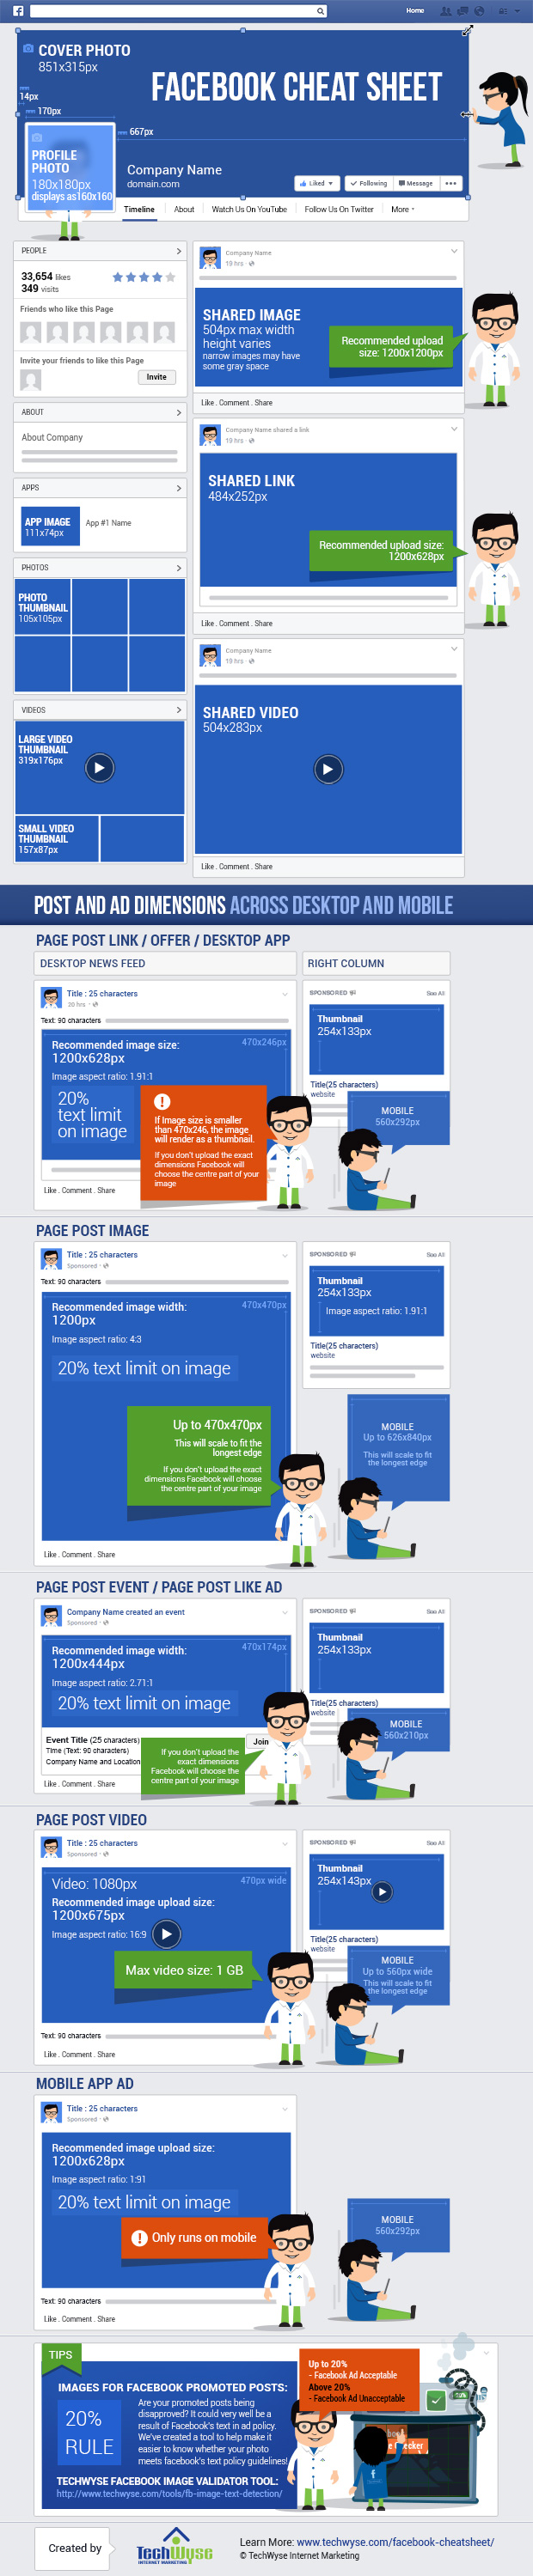 2015 Facebook Cheat Sheet – All Sizes, Dimensions, and Guidelines ...